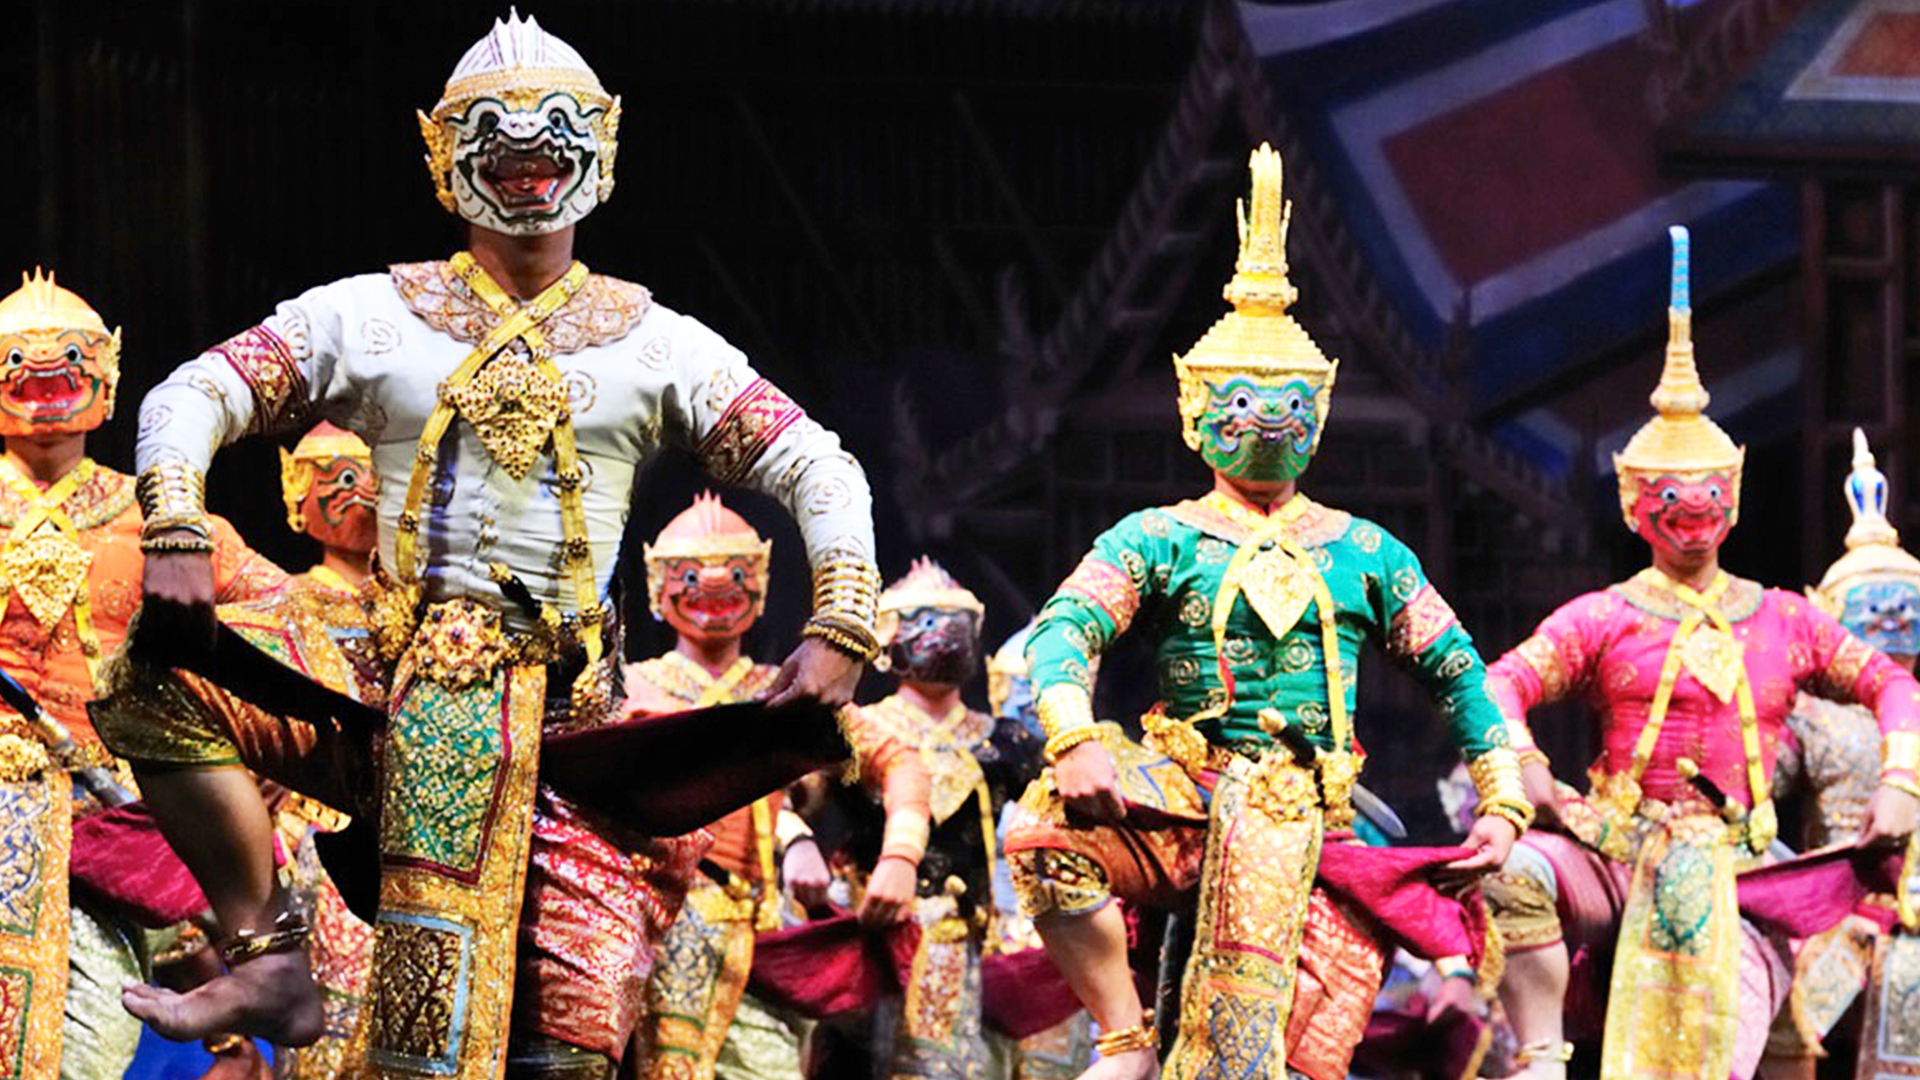 Kohn is the traditional Thai masked dance. In the past, it was only performed for the royal family. It is now performed outside of the royal court, however, it is still considered to be one of the highest art forms in Thailand. The performances are derived from the Thai epic, Ramakien, which is the Thai version of the Hindu Ramayana. Most of the dancers are men, and they play a number of different characters, including men, women, demons, and monkeys. In addition to masks, these performances are accompanied by narrators and a Thai piphat orchestra, which usually consists of percussion and wind instruments.